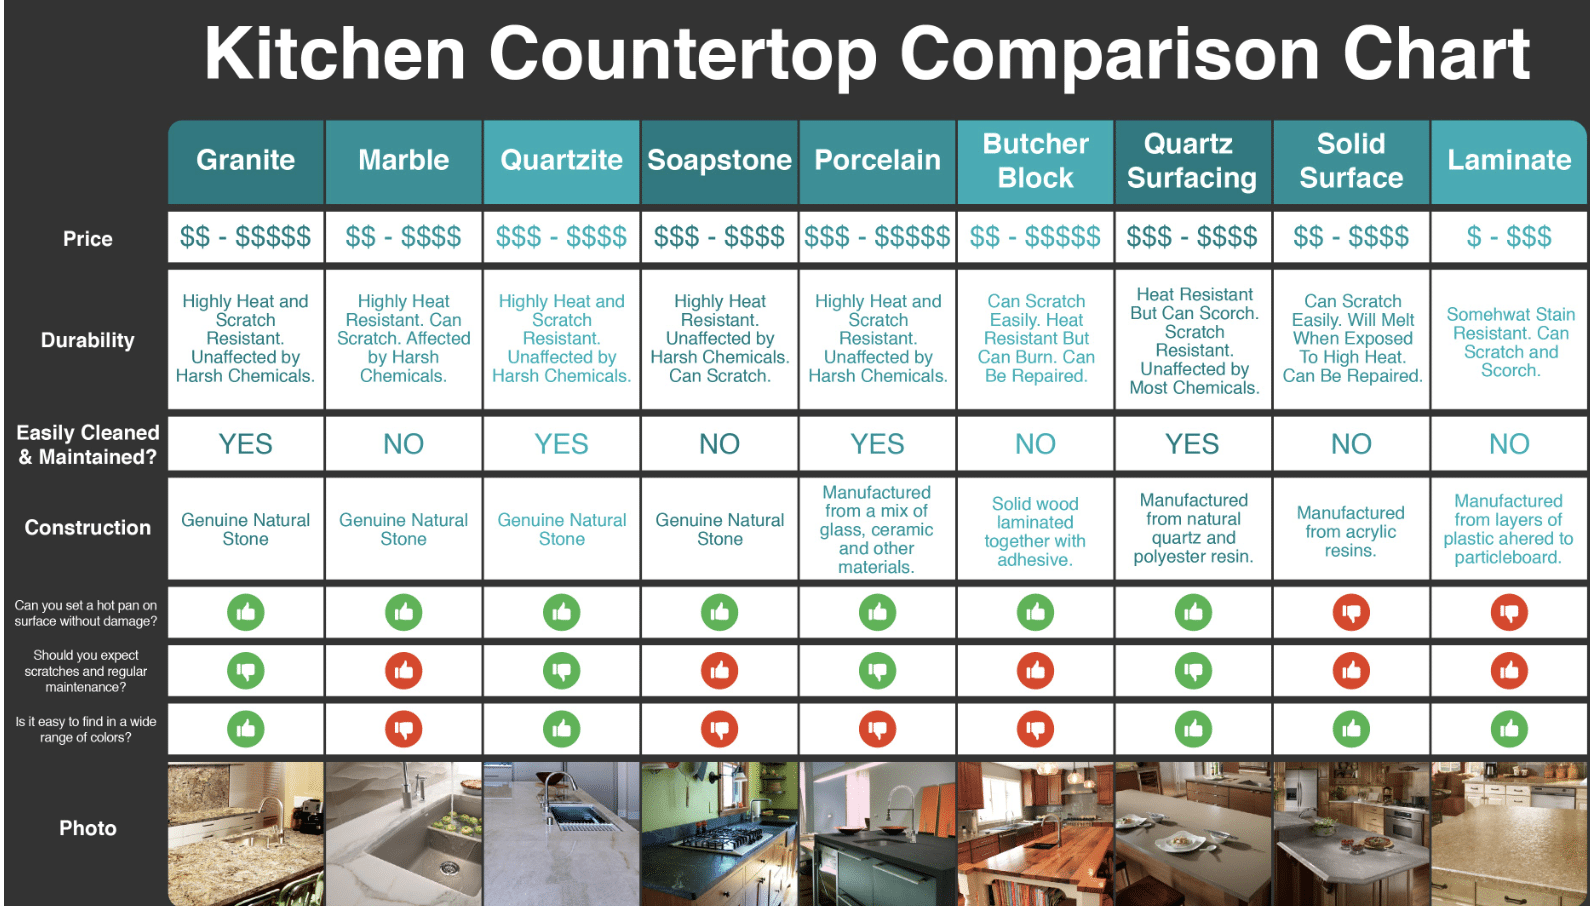 Kitchen Countertop Comparison Chart Natural Stone Gets The All Green Go Ahead Til Mar Design